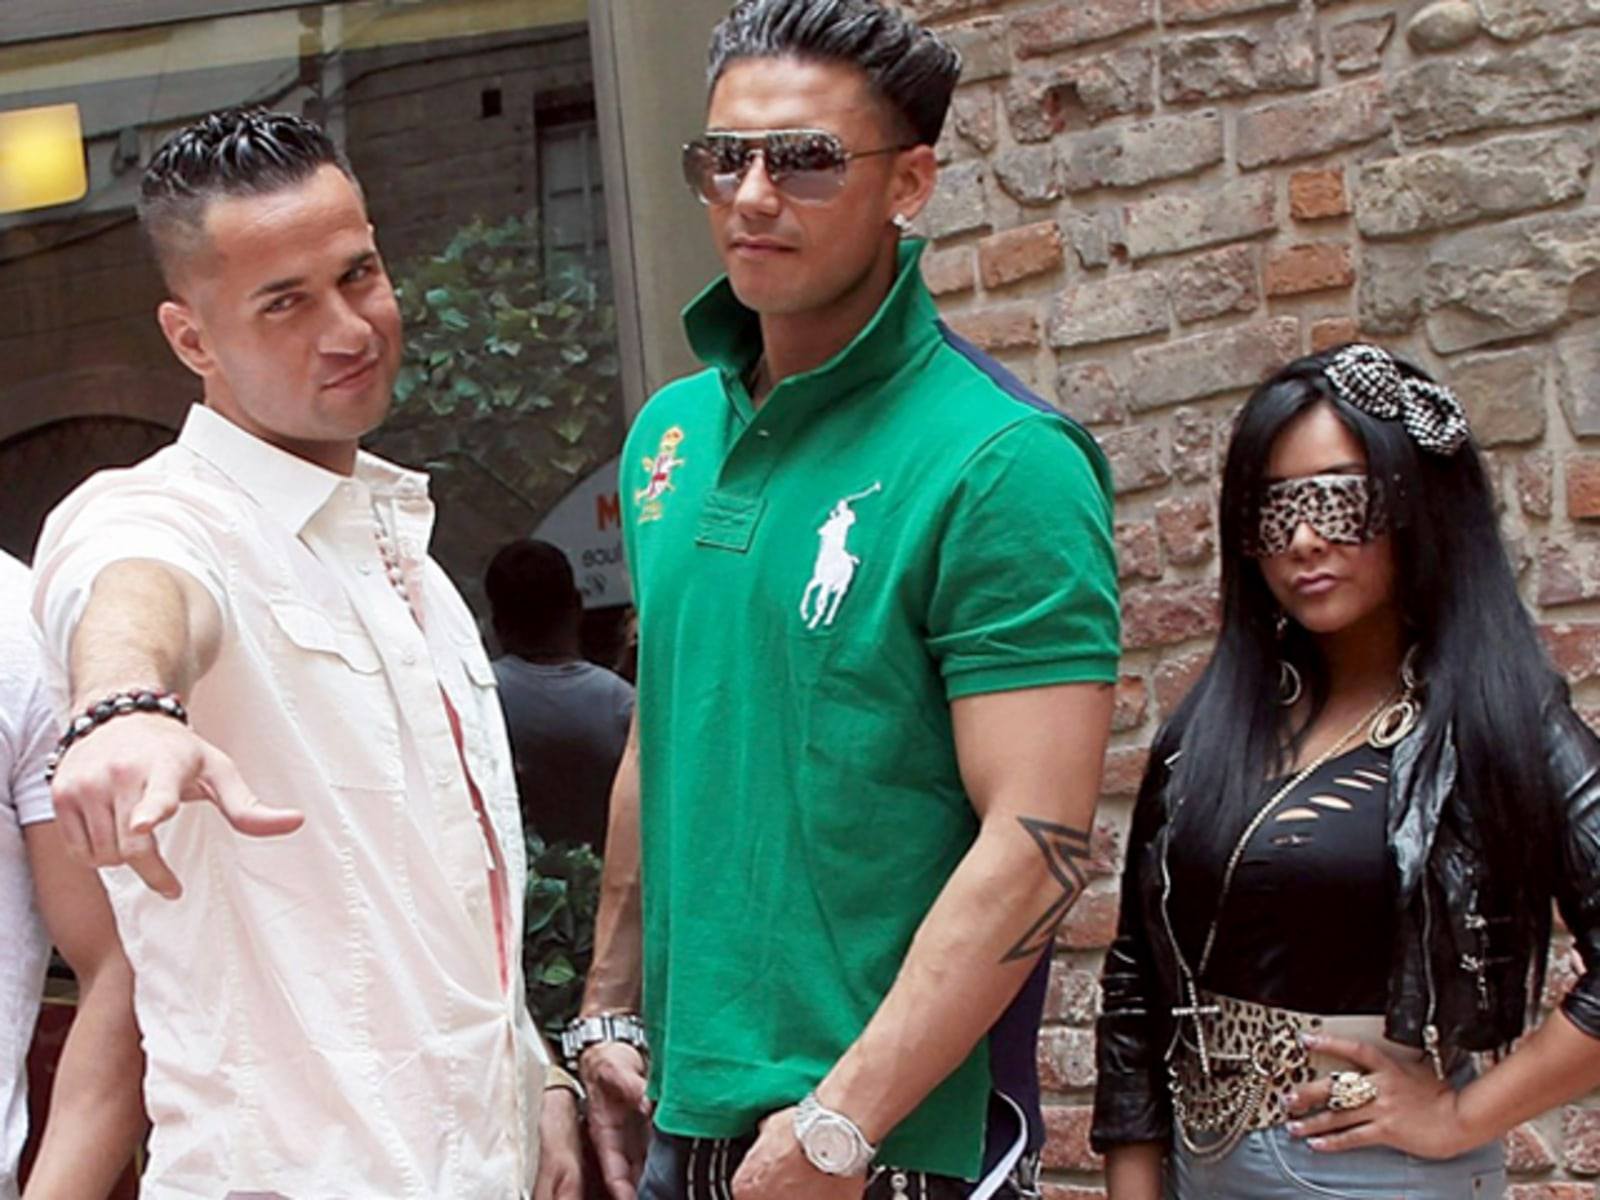 Image: Jersey Shore Photocall In Florence